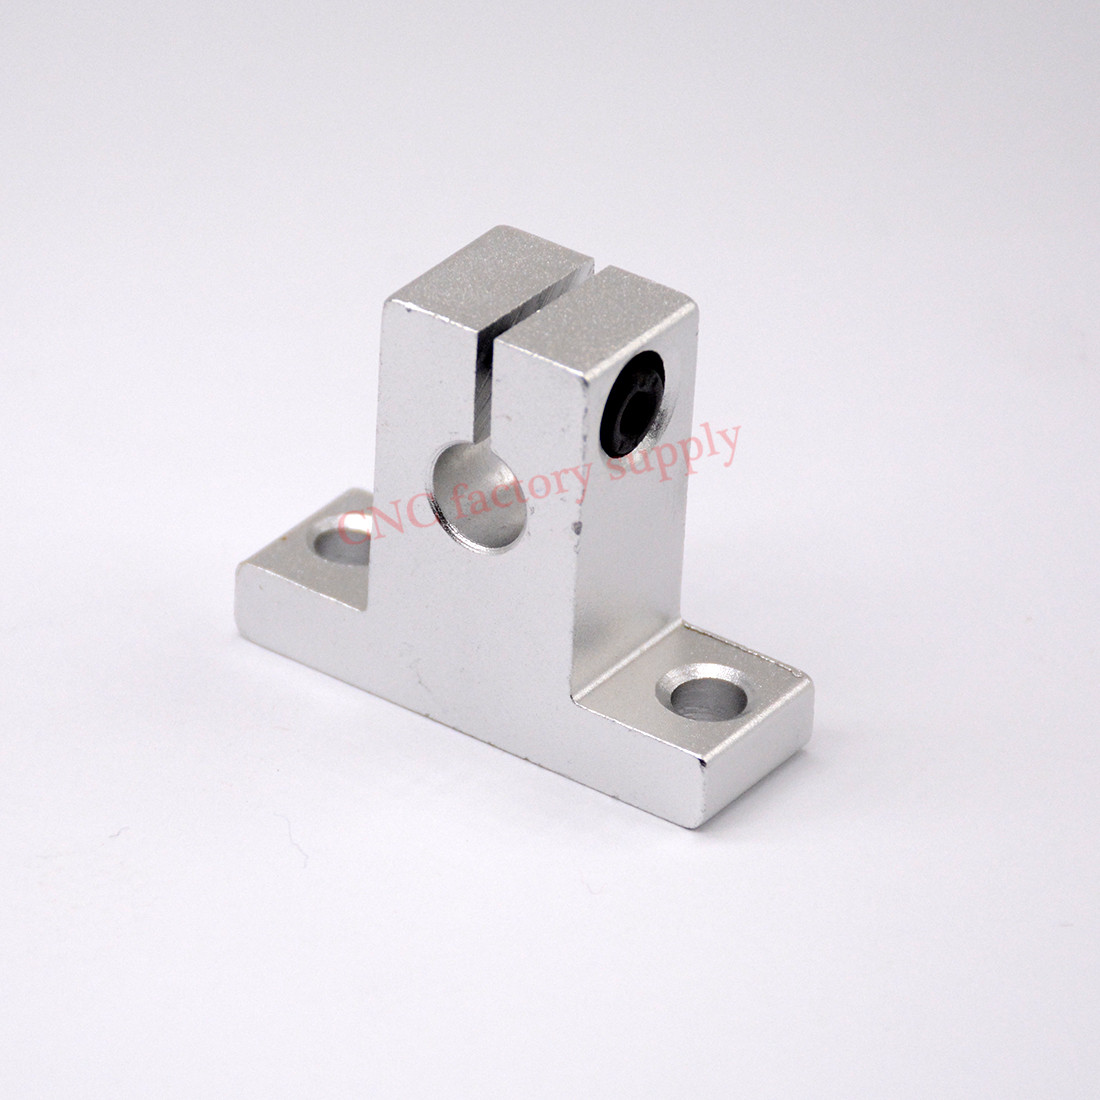 Hot sale 1pc SK16 16mm linear bearing rail shaft support XYZ Table CNC Router SH16A sk16 sh16a 16mm linear rail shaft support xyz table cnc 2pcs lot